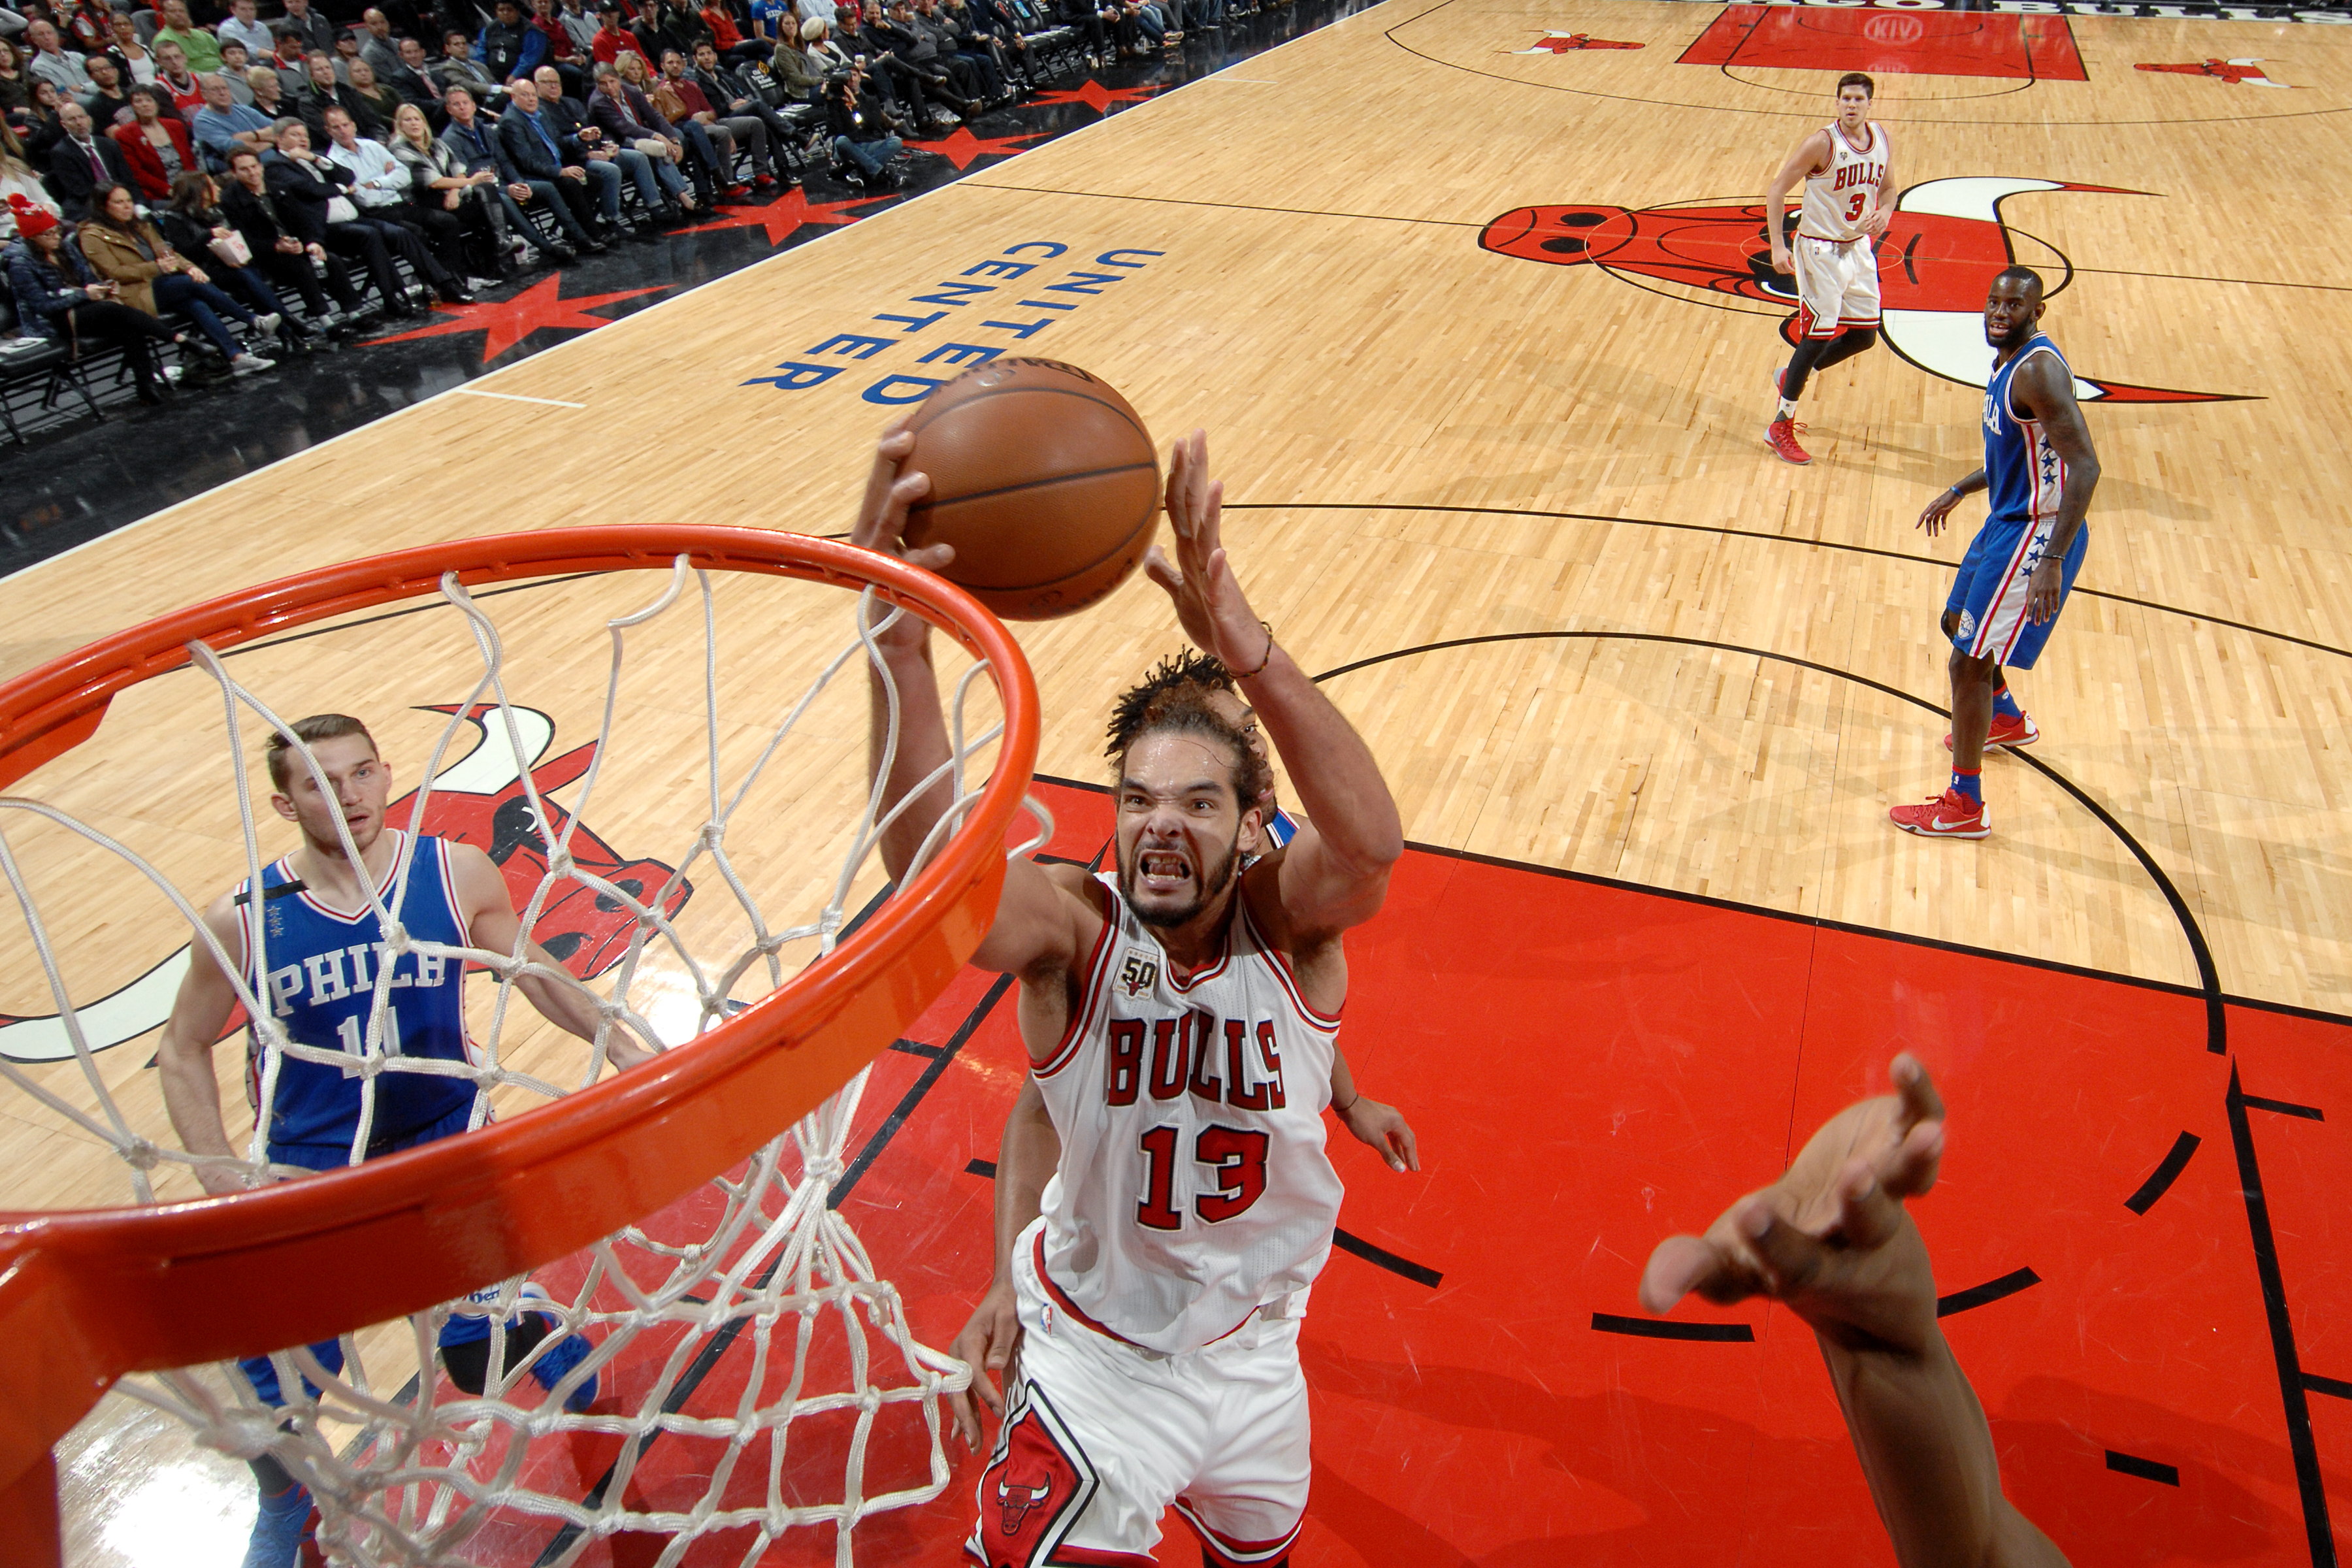 CHICAGO, IL - DECEMBER 14: Joakim Noah #13 of the Chicago Bulls goes for the lay up during the game against the Philadelphia 76ers on December 14, 2015 at the United Center in Chicago, Illinois. (Photo by Randy Belice/NBAE via Getty Images)